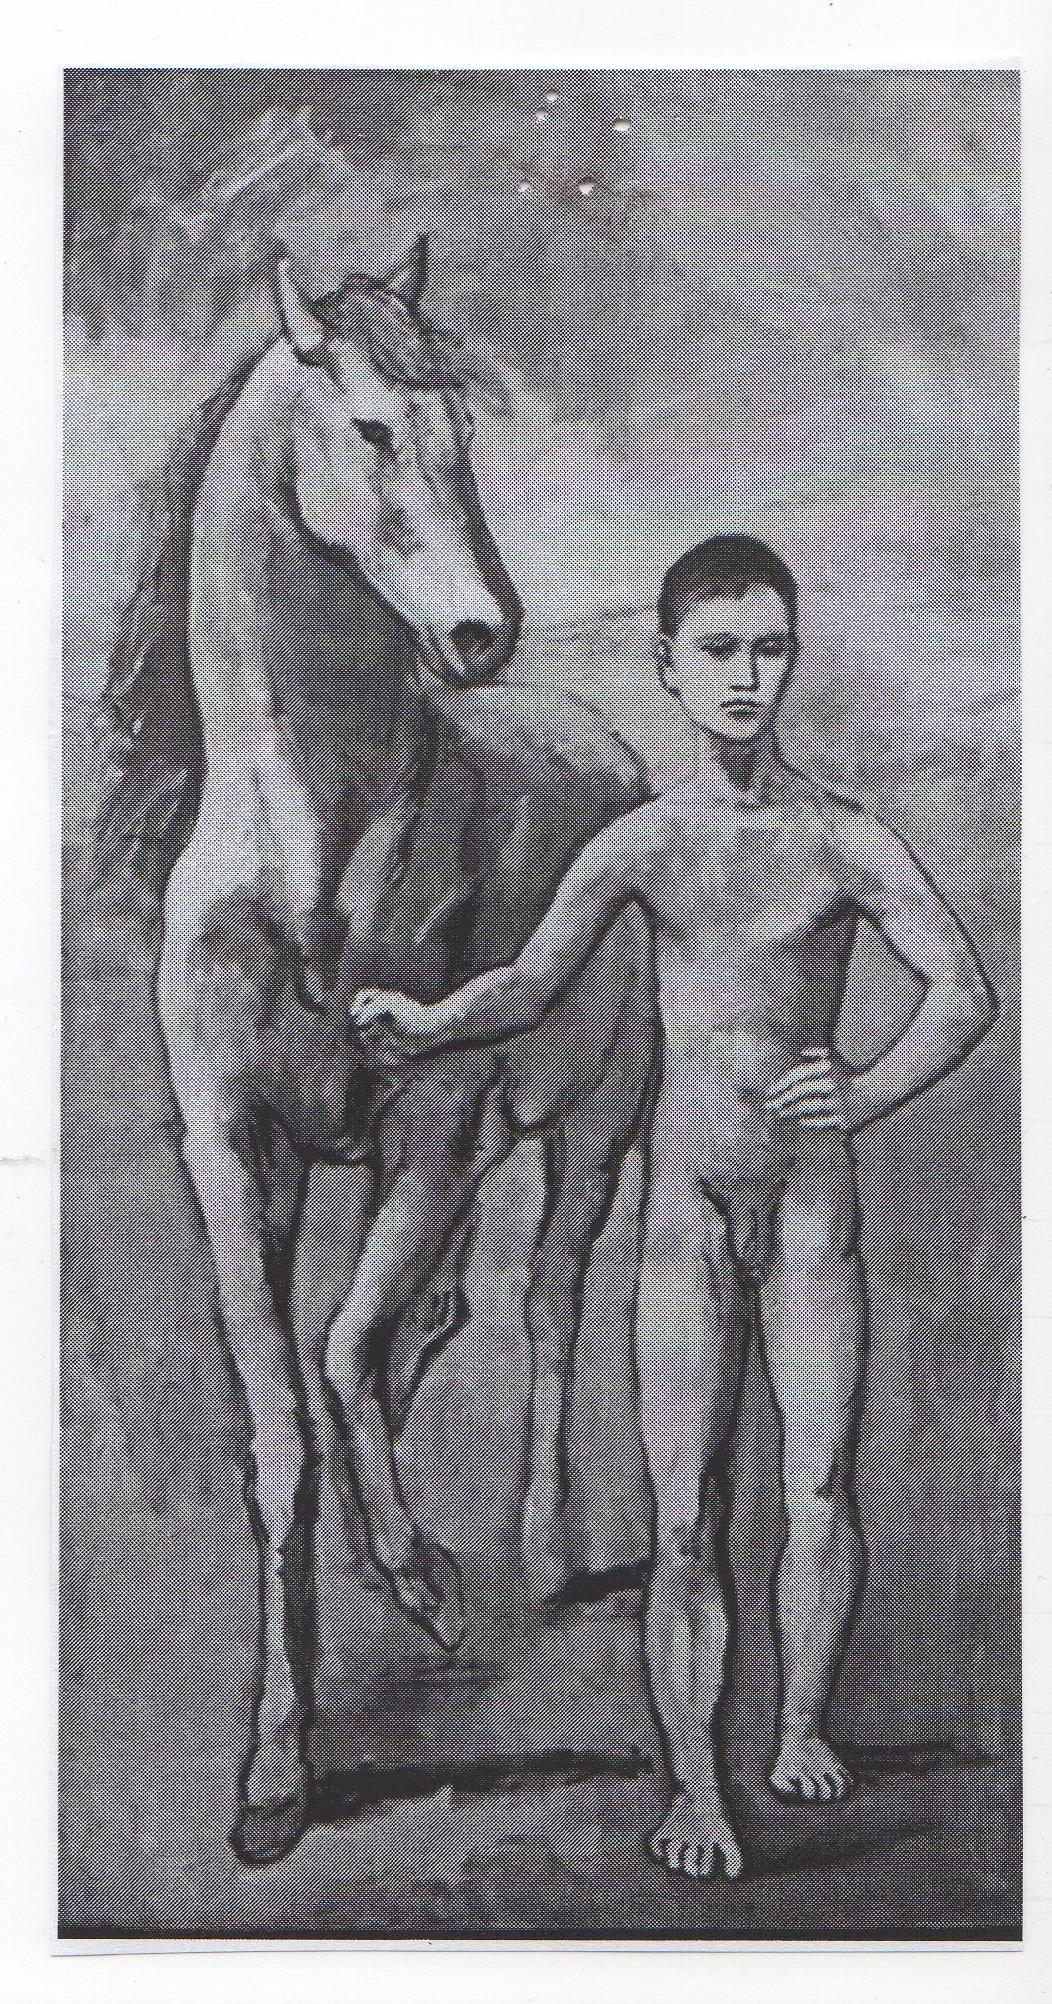 boy with horse001_2